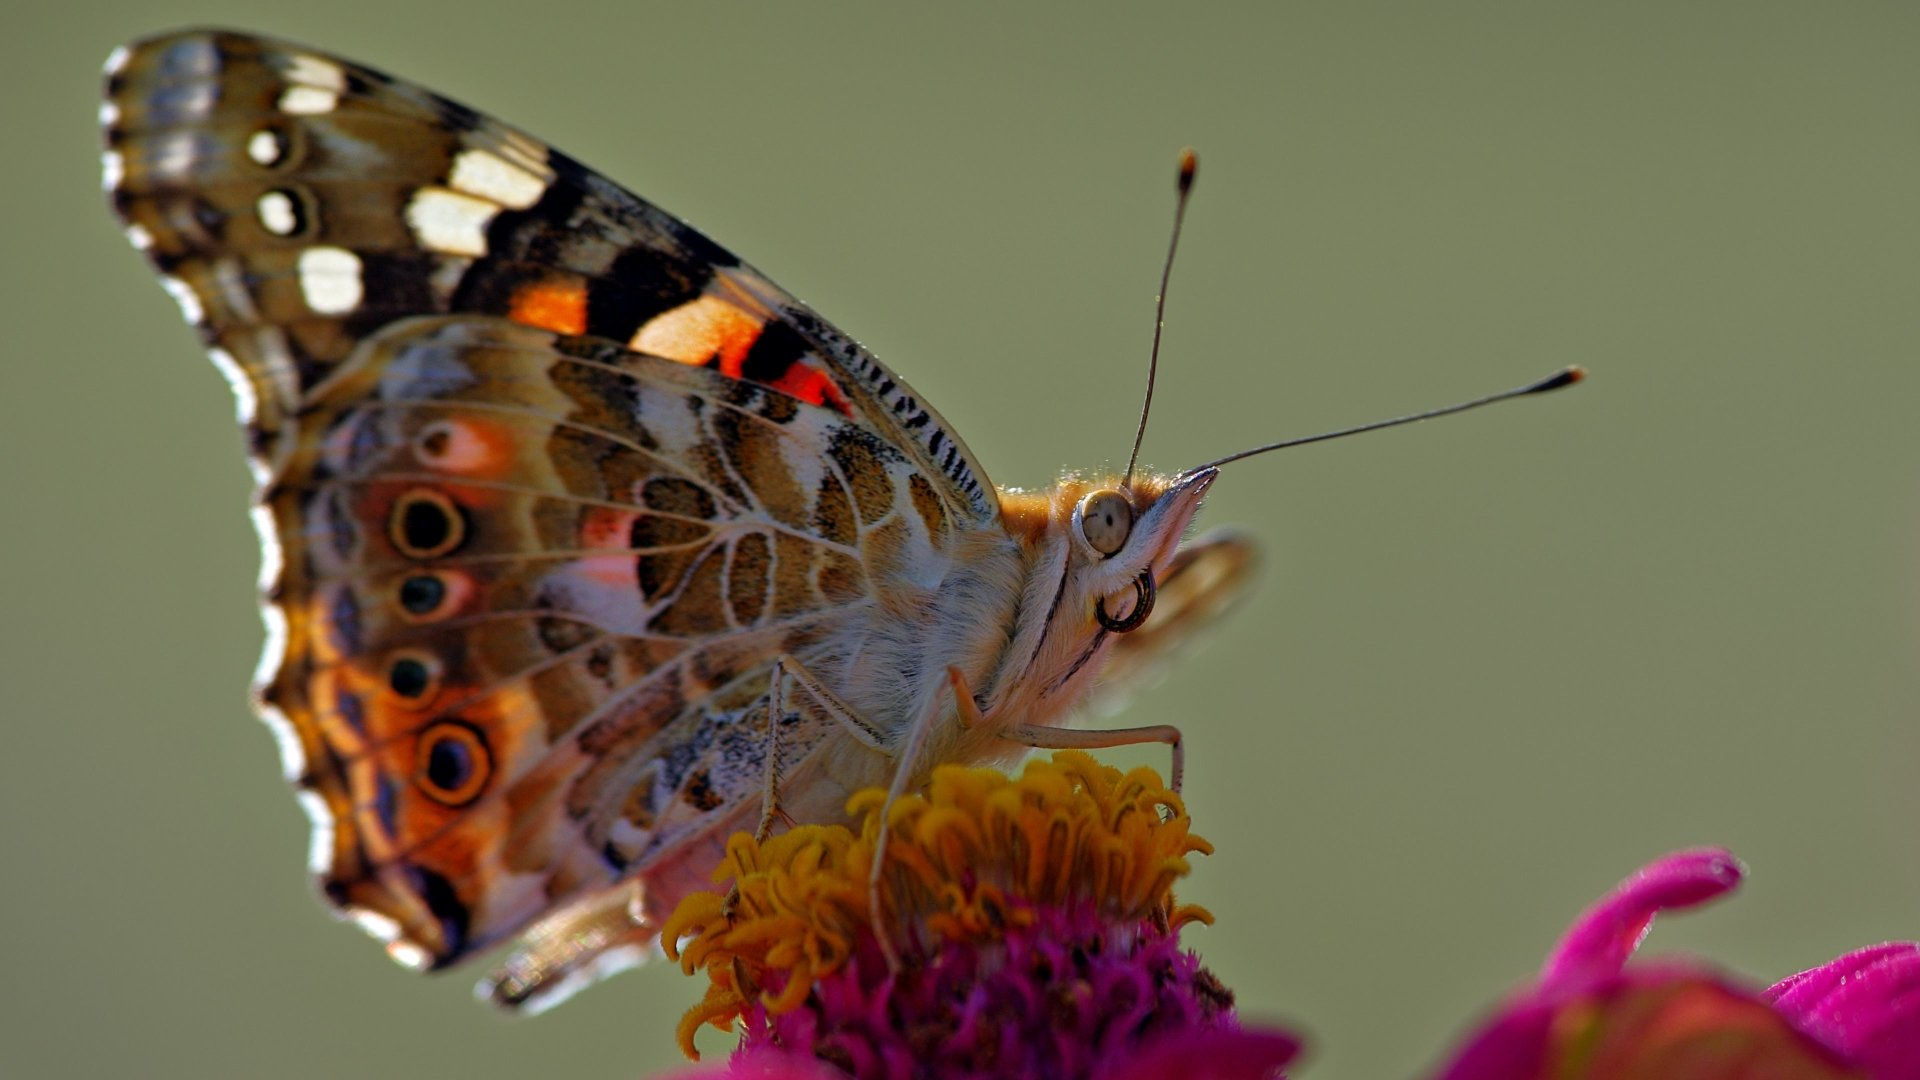 Butterfly macro 4k ultra hd wallpaper and background image 3840x2160 id 549955 - Ultra 4k background images ...